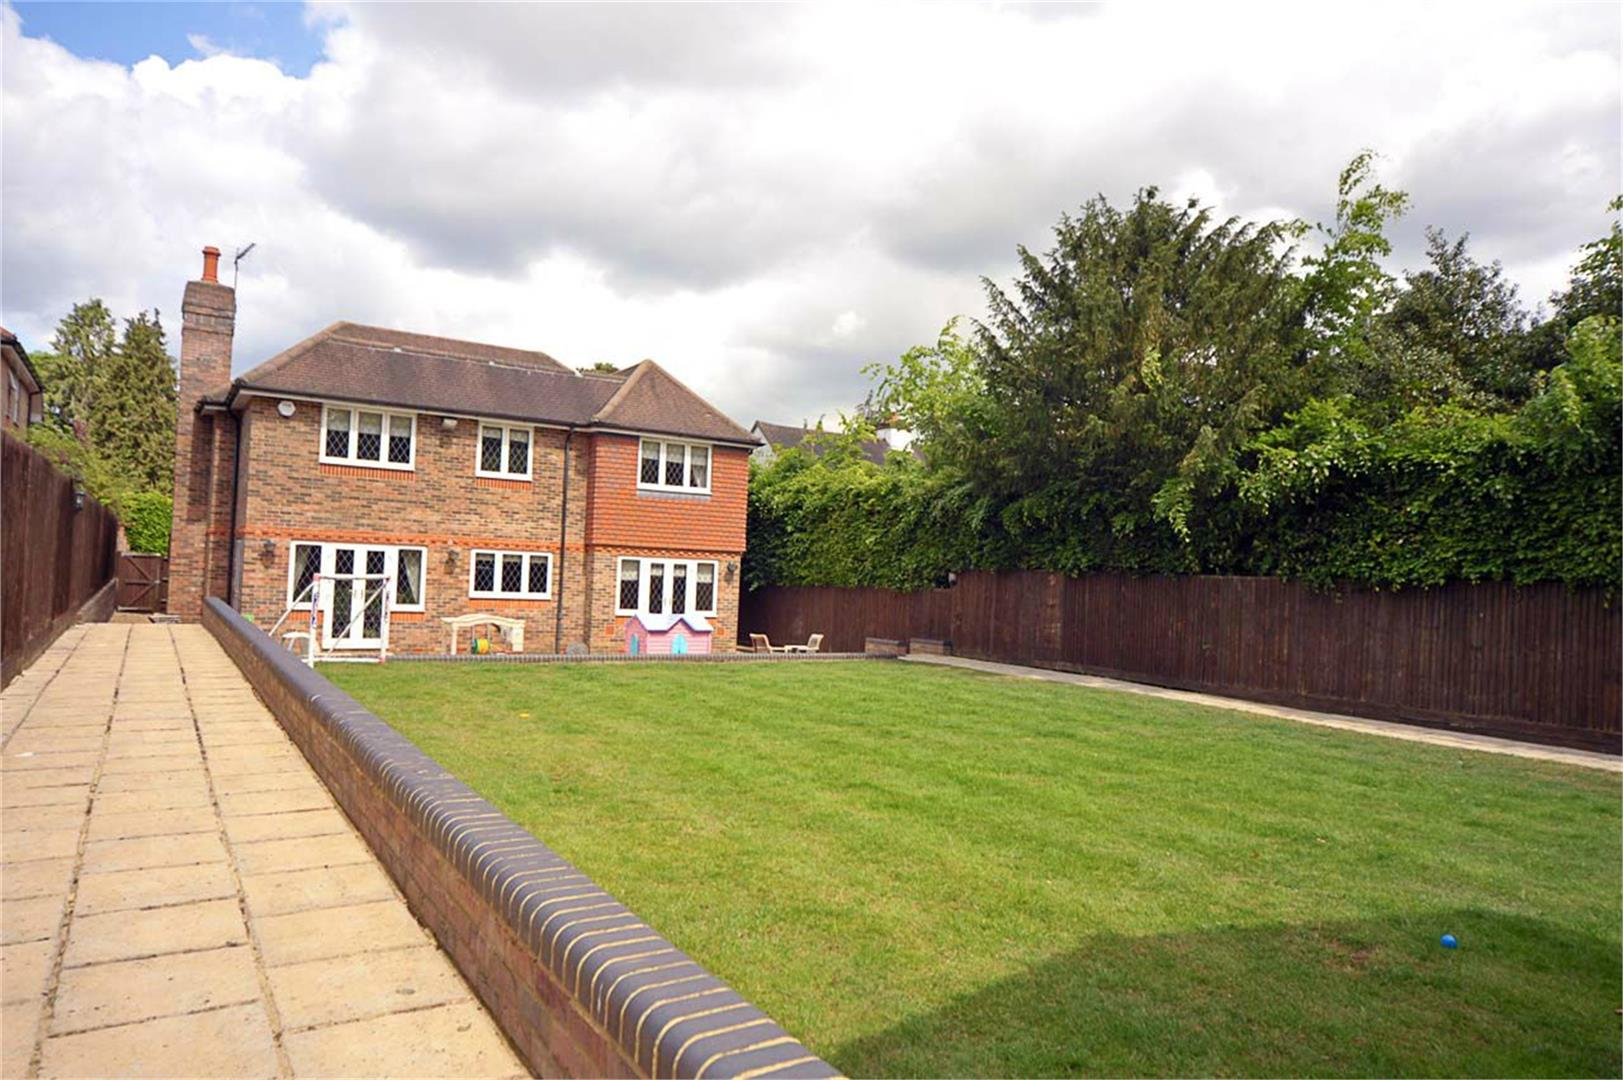 5 bed to rent - (Property Image 8)